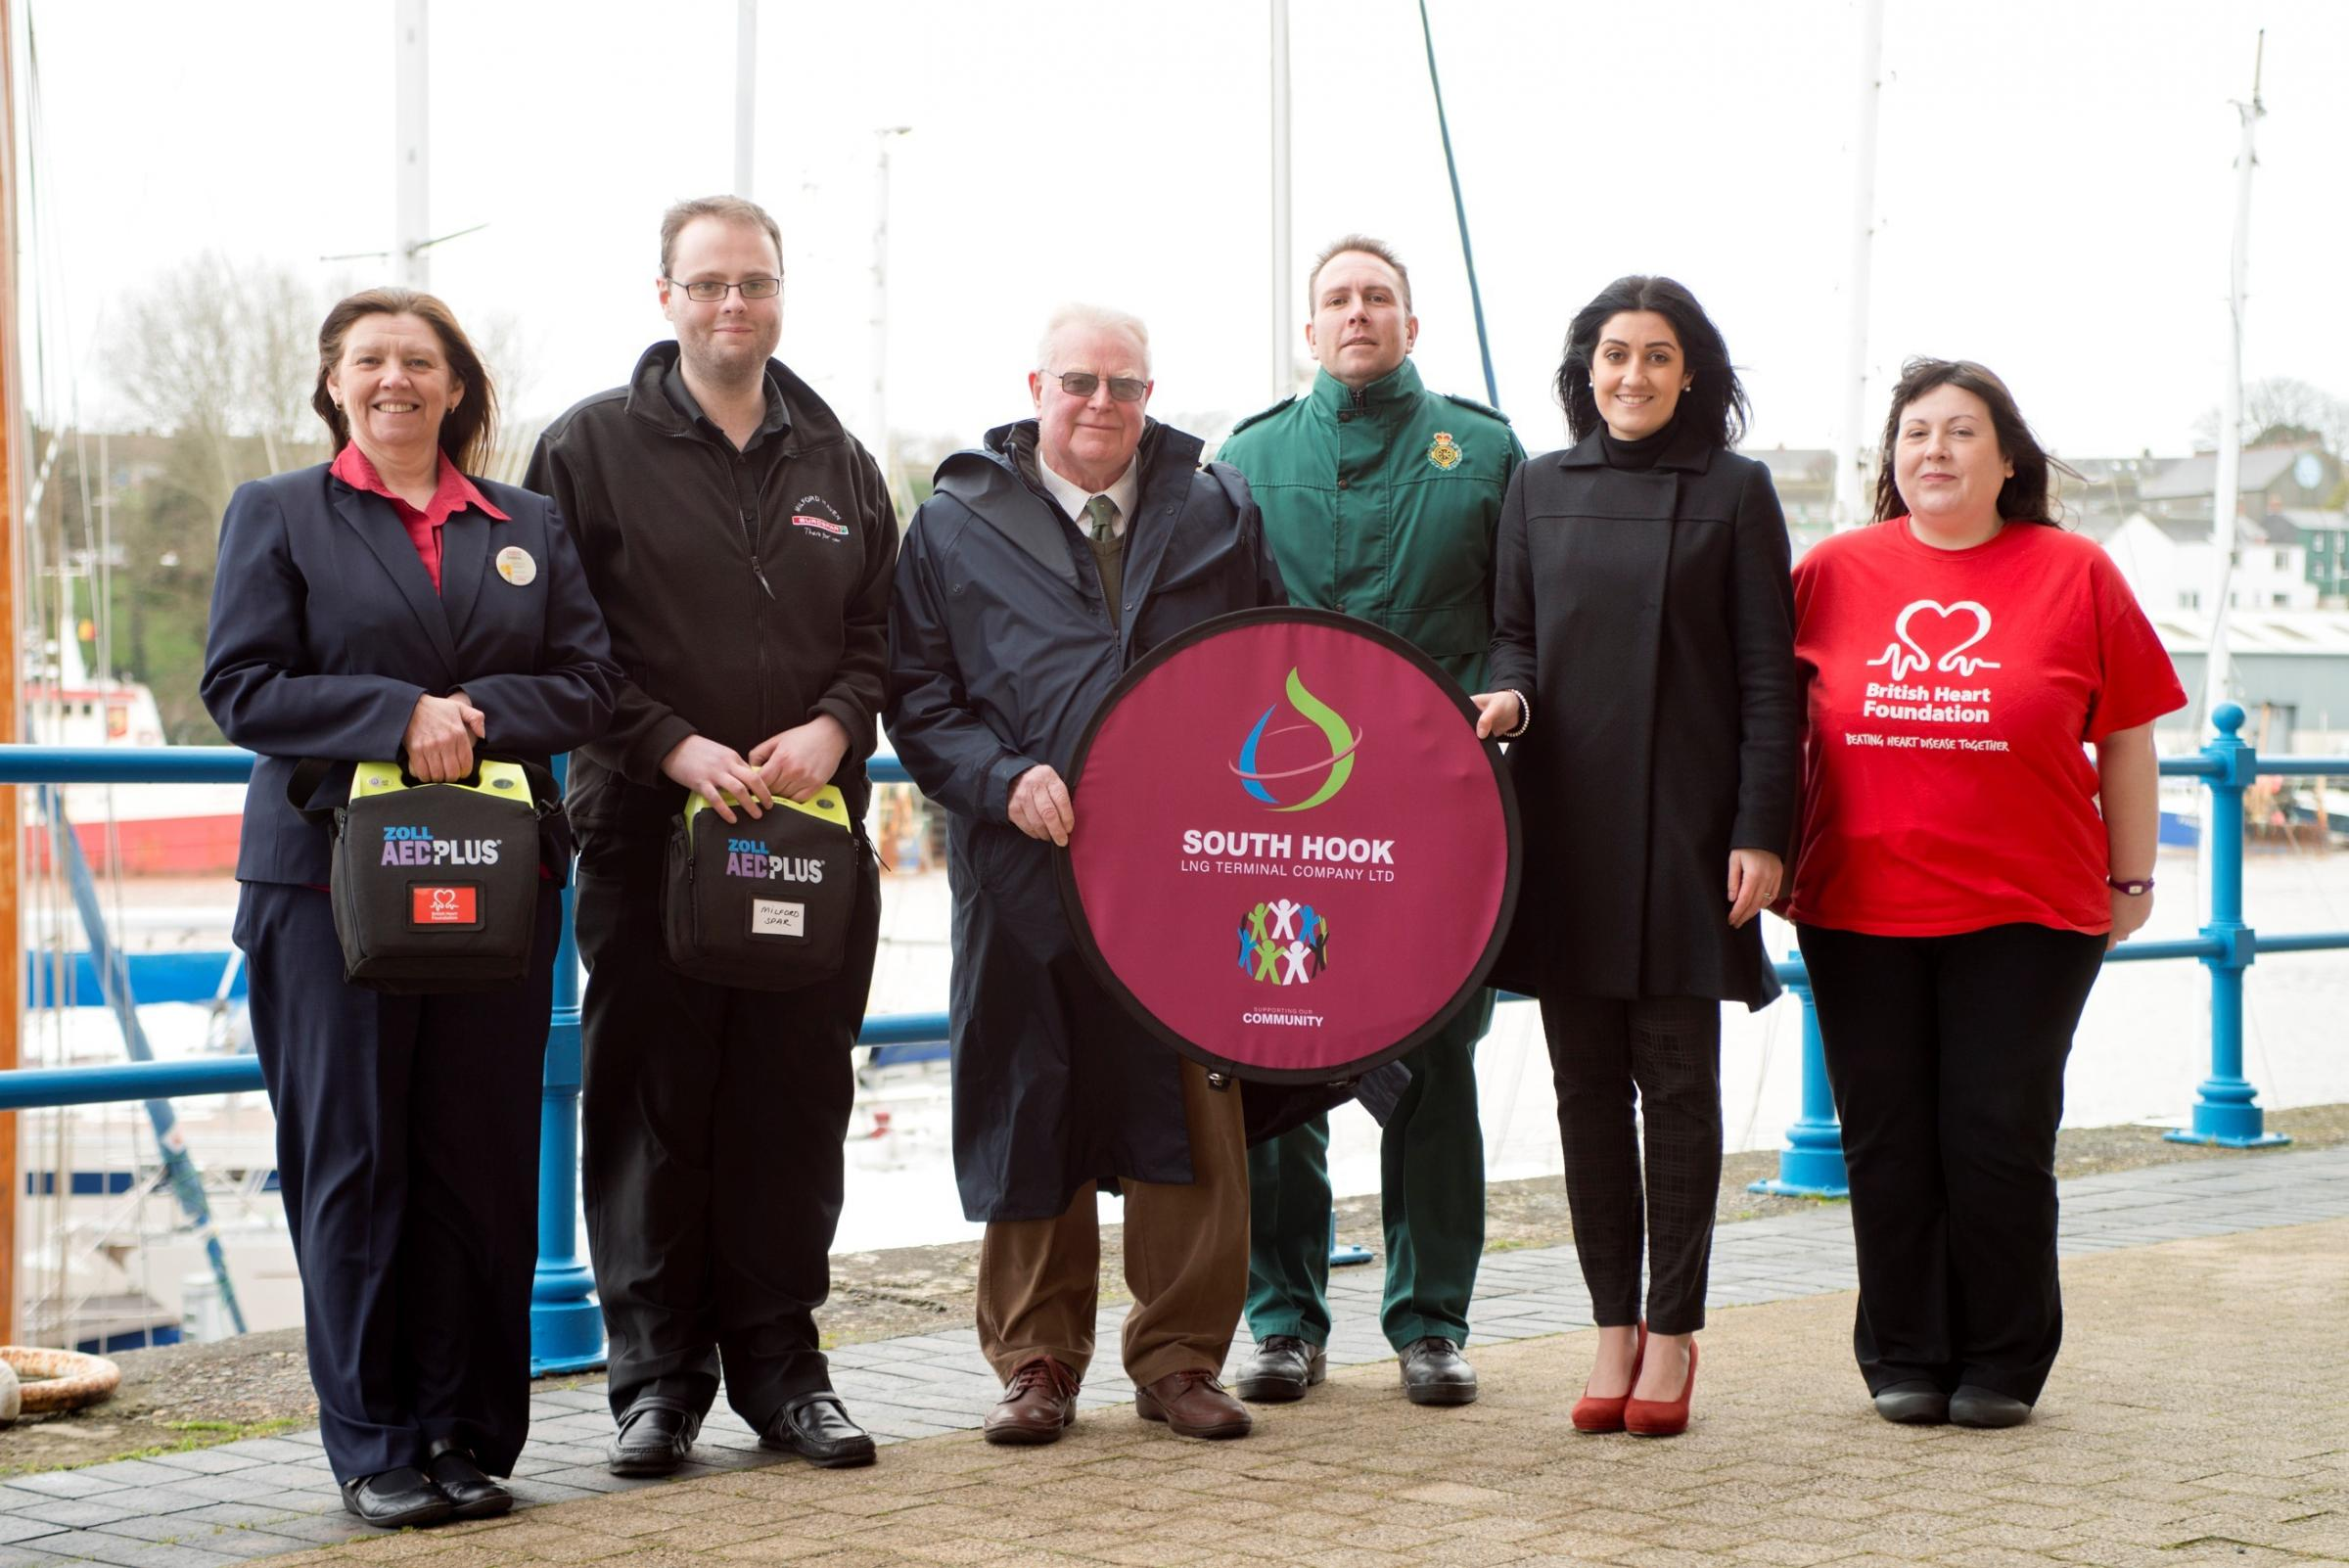 HEART OF THE COMMUNITY: Debbie Mills, Tesco Store Milford Haven, Richard Harries Milford Haven Spar store,   Alan Carrington Haverfodwest and Milford haven Chairman, Gethin Bateman Welsh Ambulance Service,  Mariam Dalziel South Hook LNG,  Jayne Lewis BHF